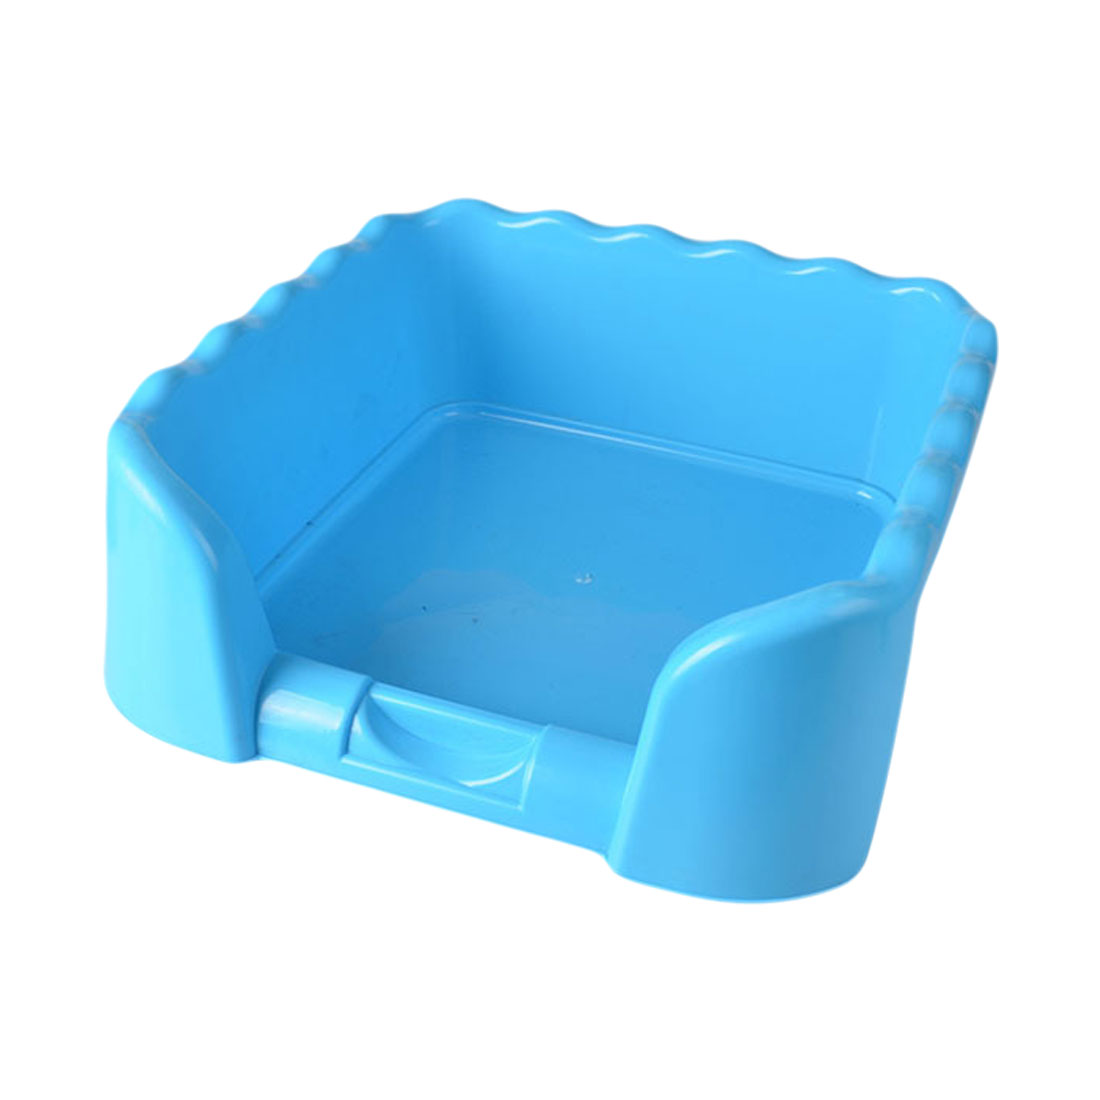 Portable Puppy Training Tray with Fence for Pet Dogs and Cats Potty and Pee Training Indoor 13